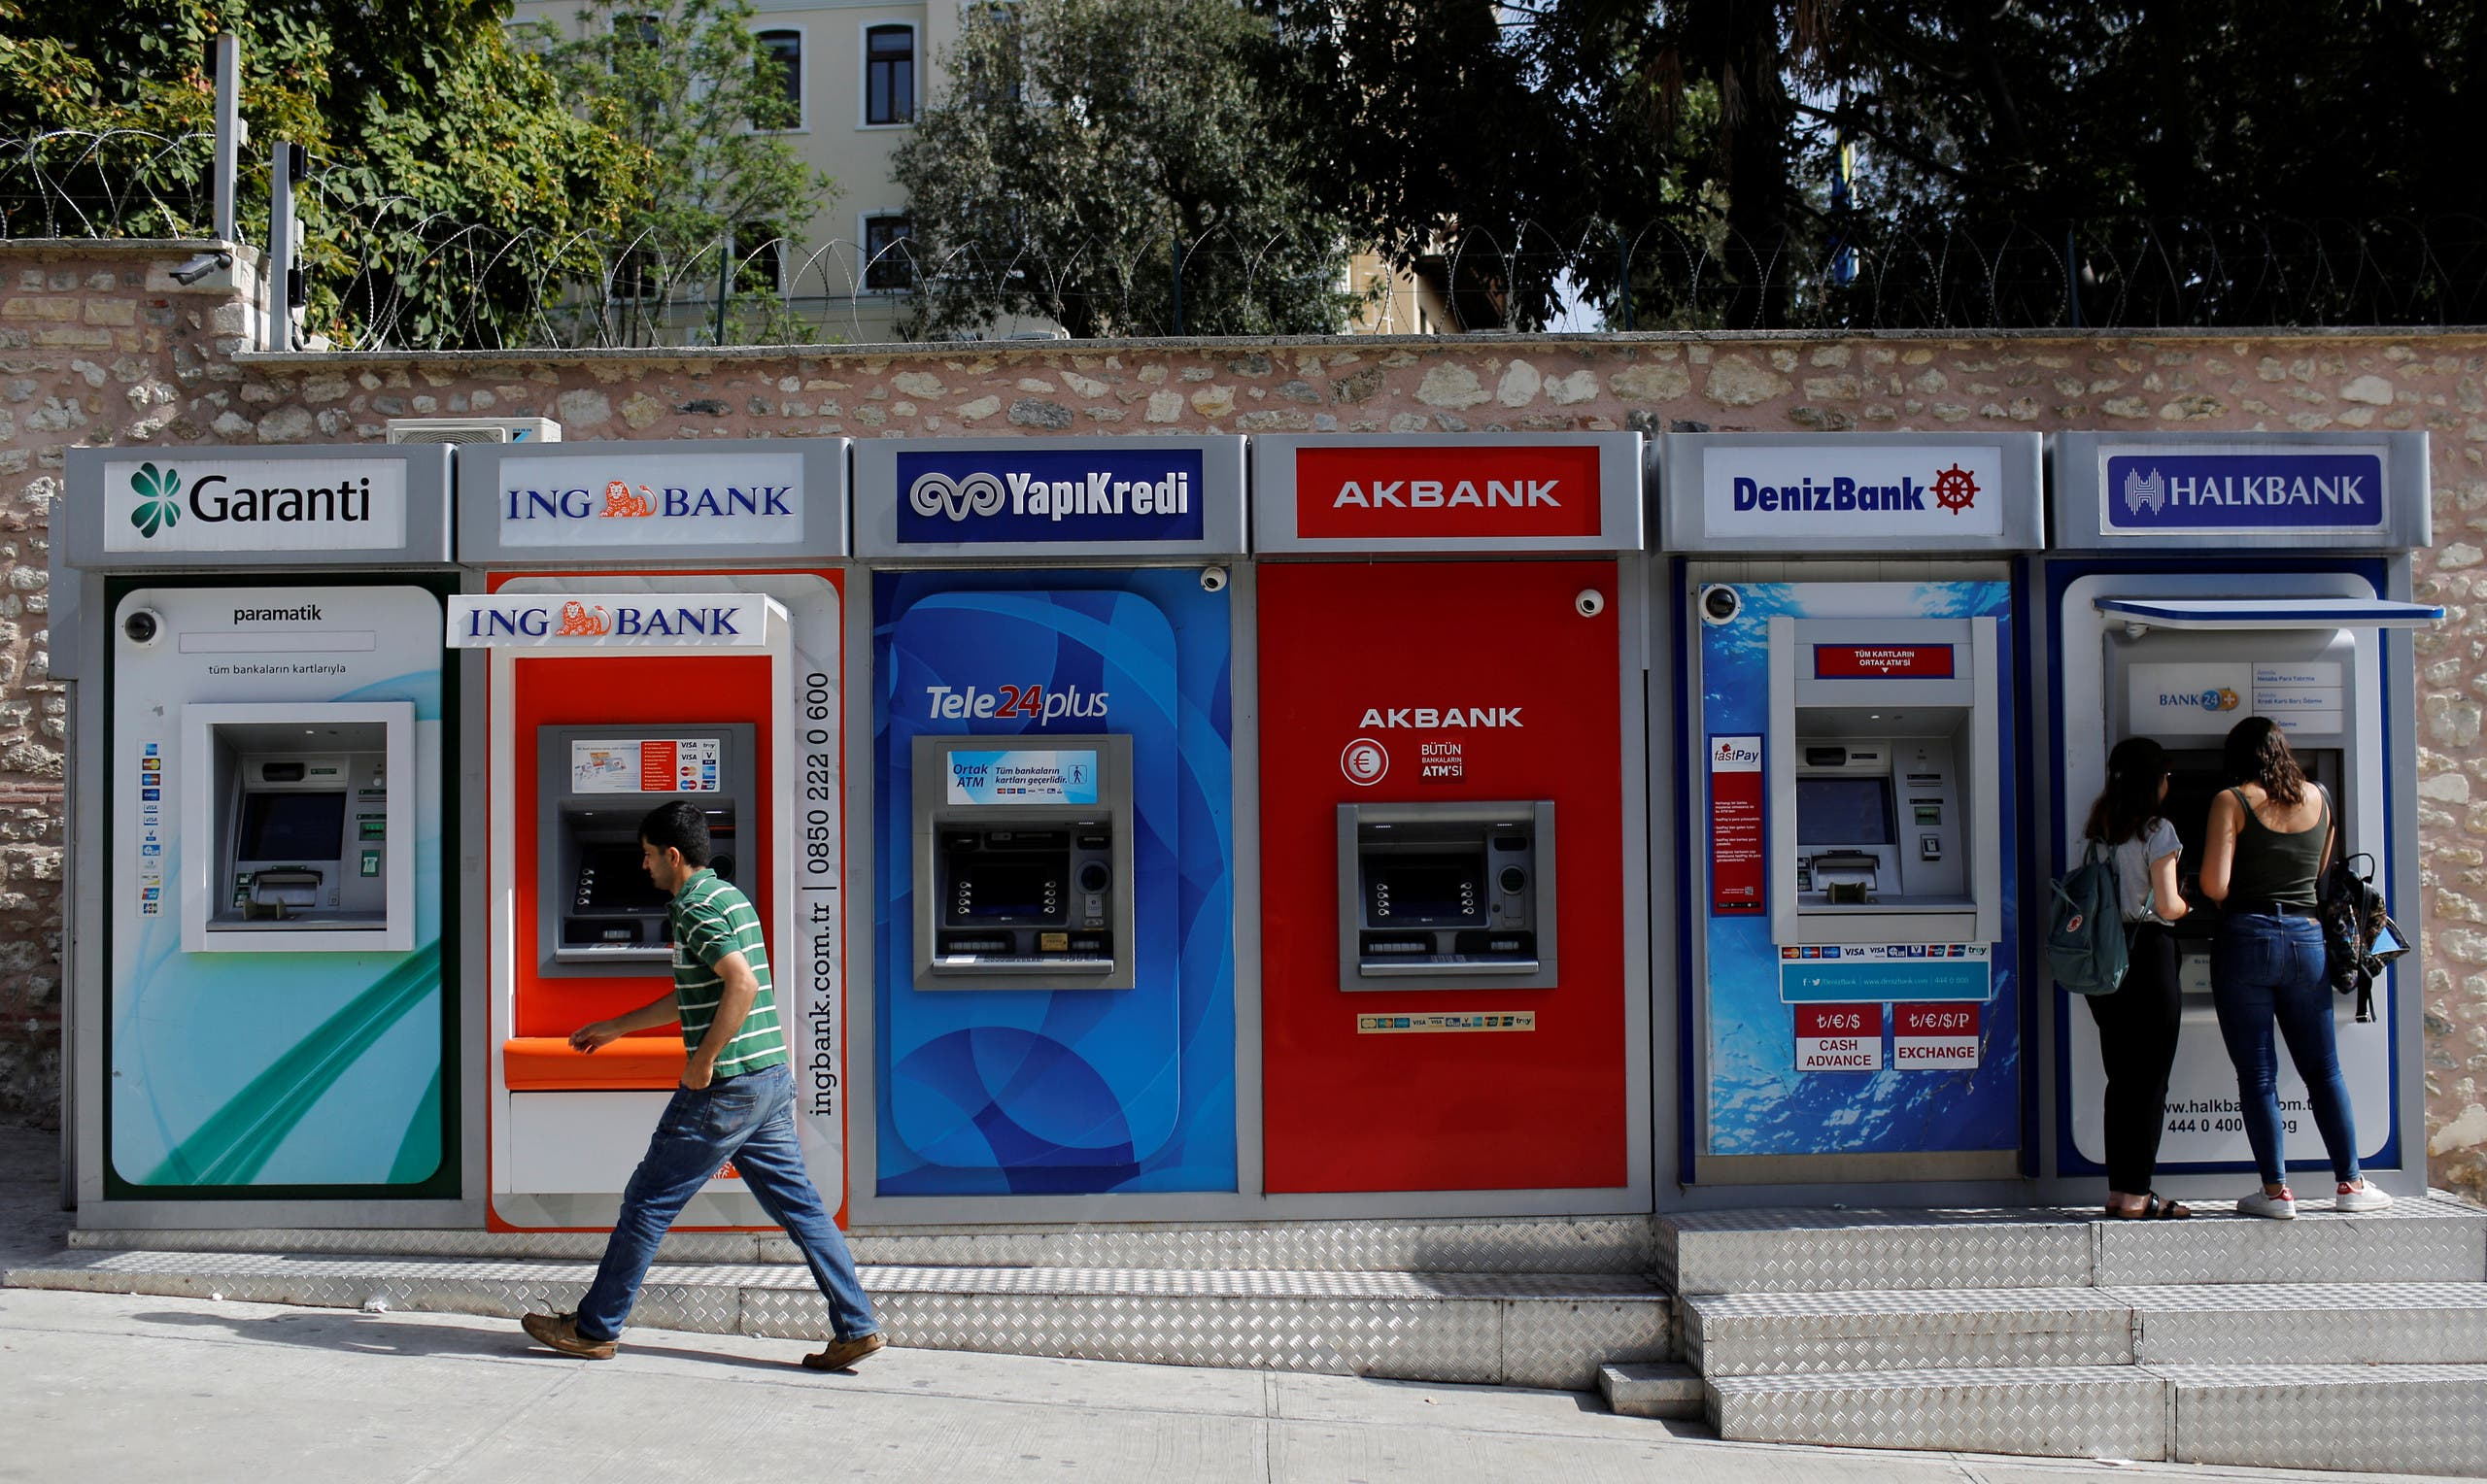 Women withdraw cash from an ATM of Halkbank in Istanbul, Turkey. (File photo: Reuters)